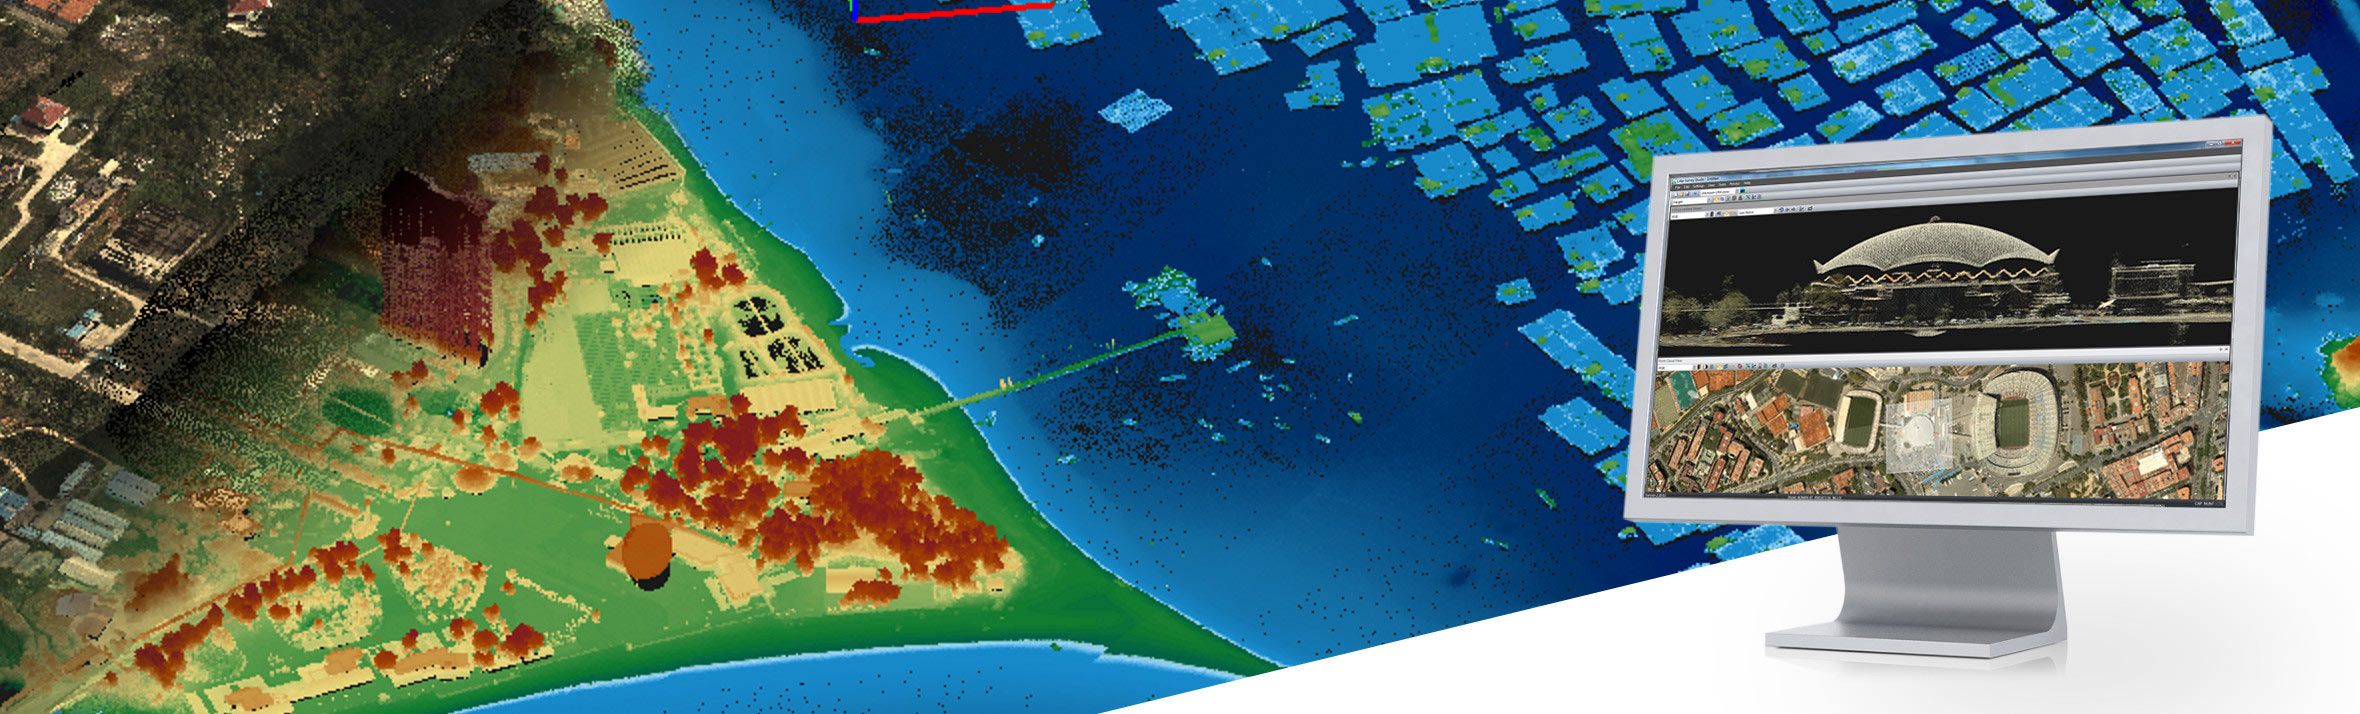 Leica LiDAR Survey Studio Software